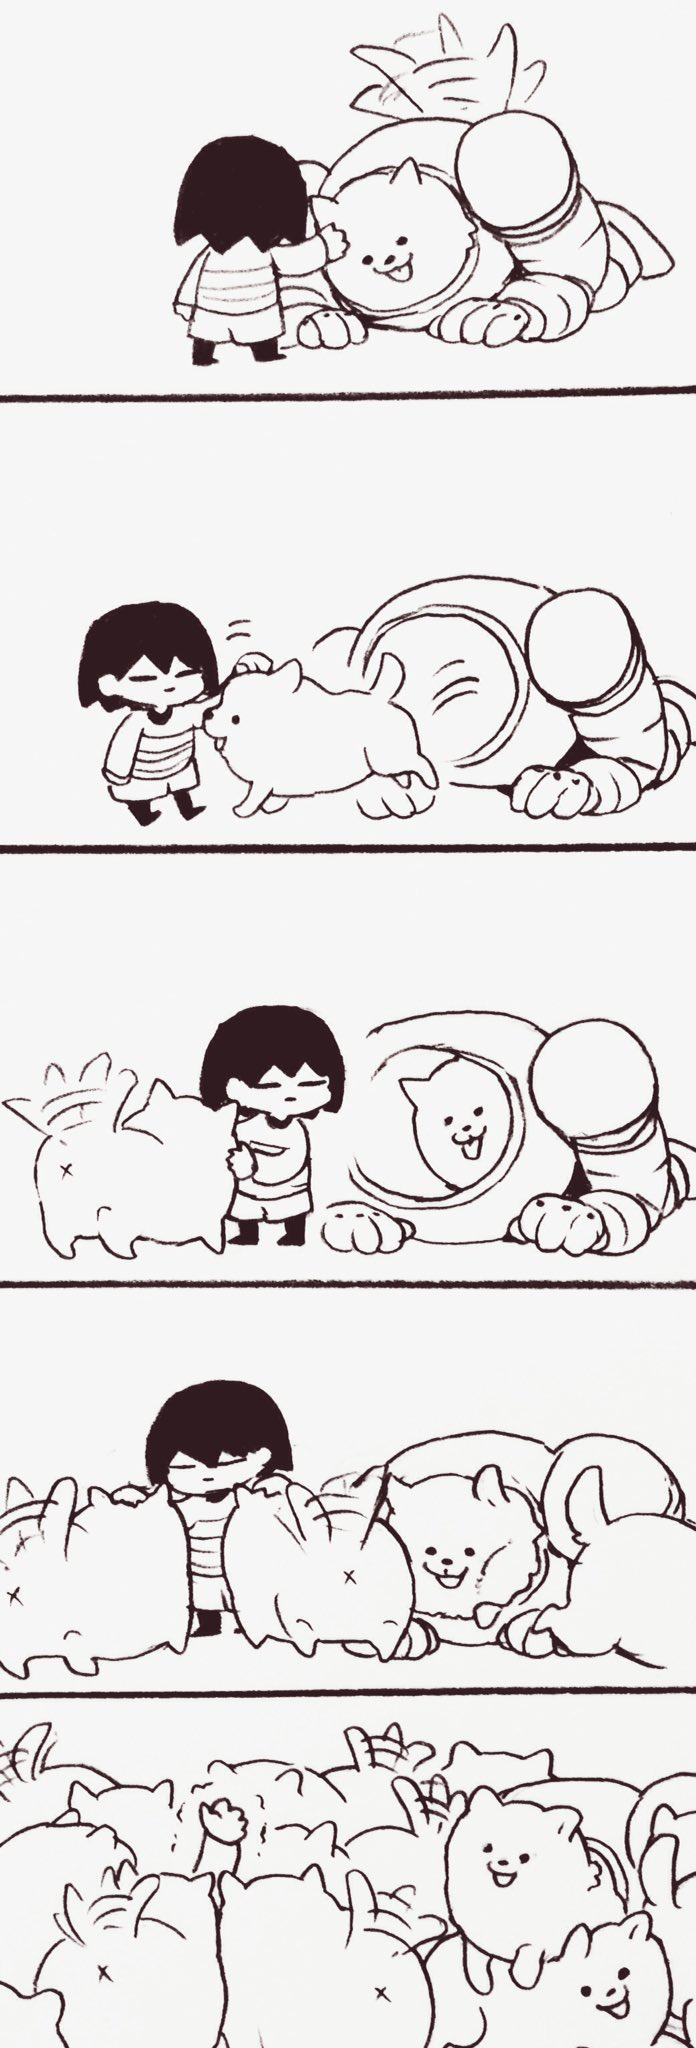 I can relate to Frisk. This is what happens when you go out in public after you walked your dog.